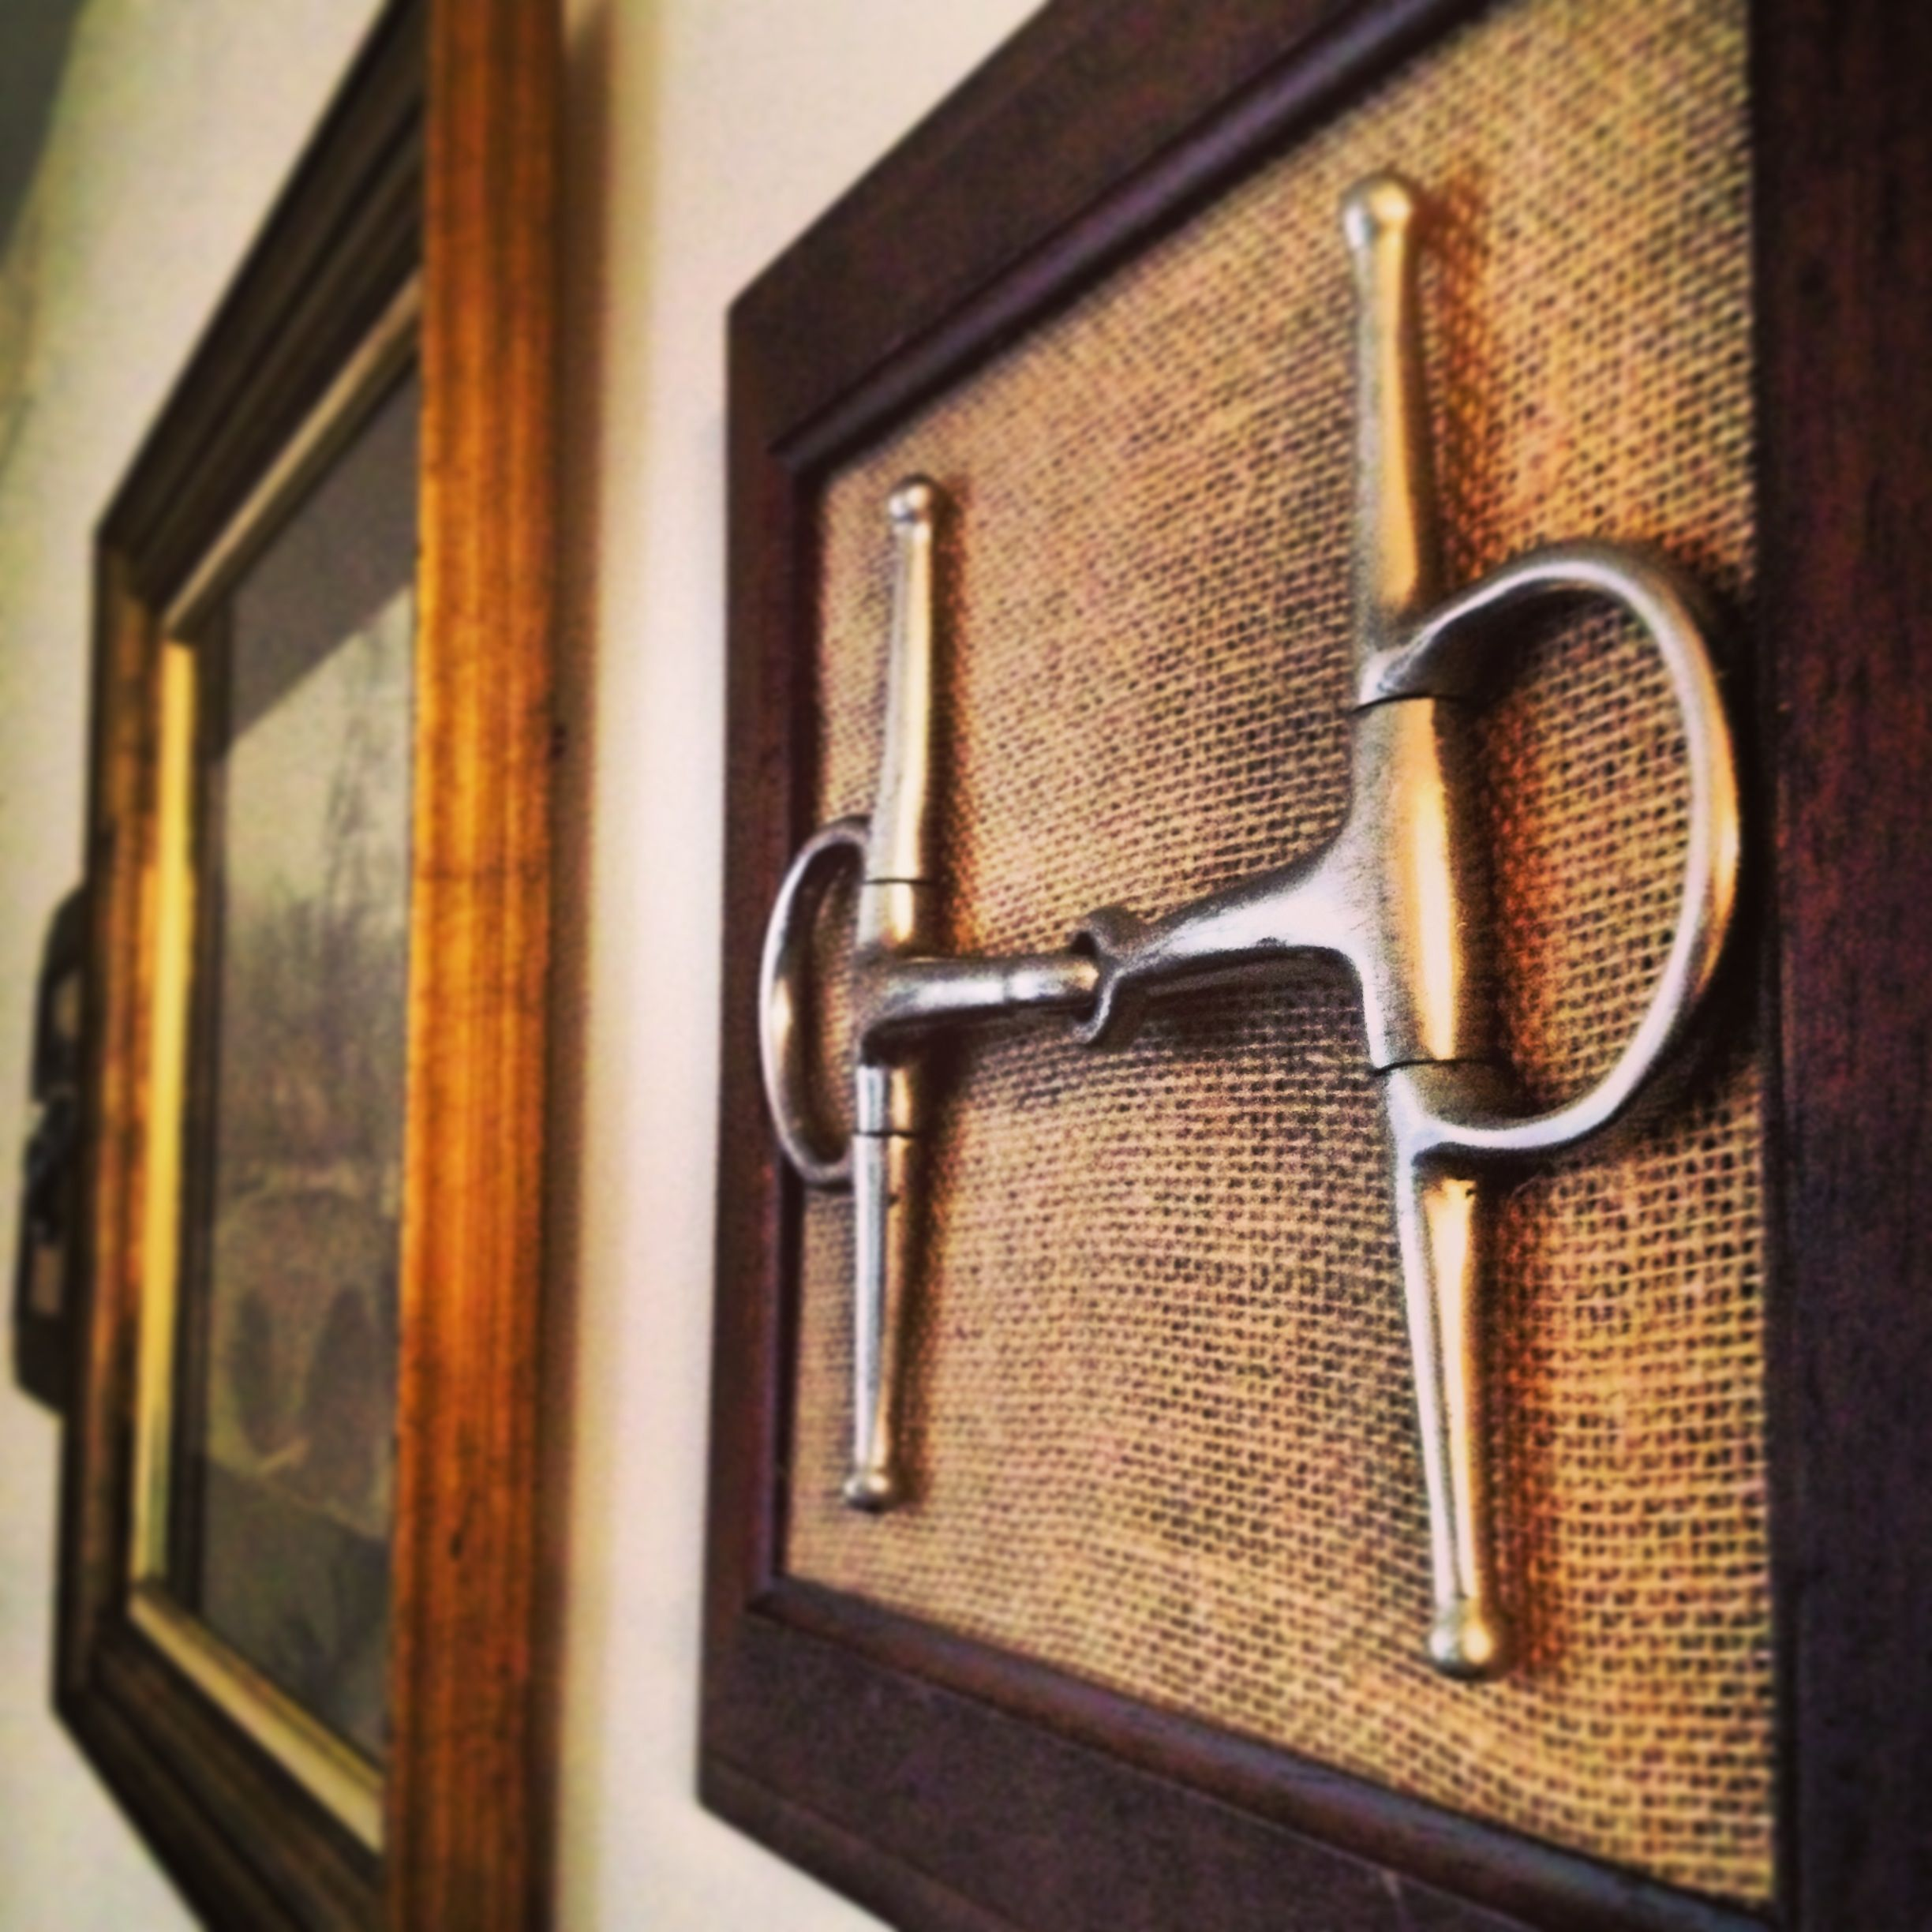 Western Ideas For Home Decorating: Snaffle Bit Style With The Velvet Rider